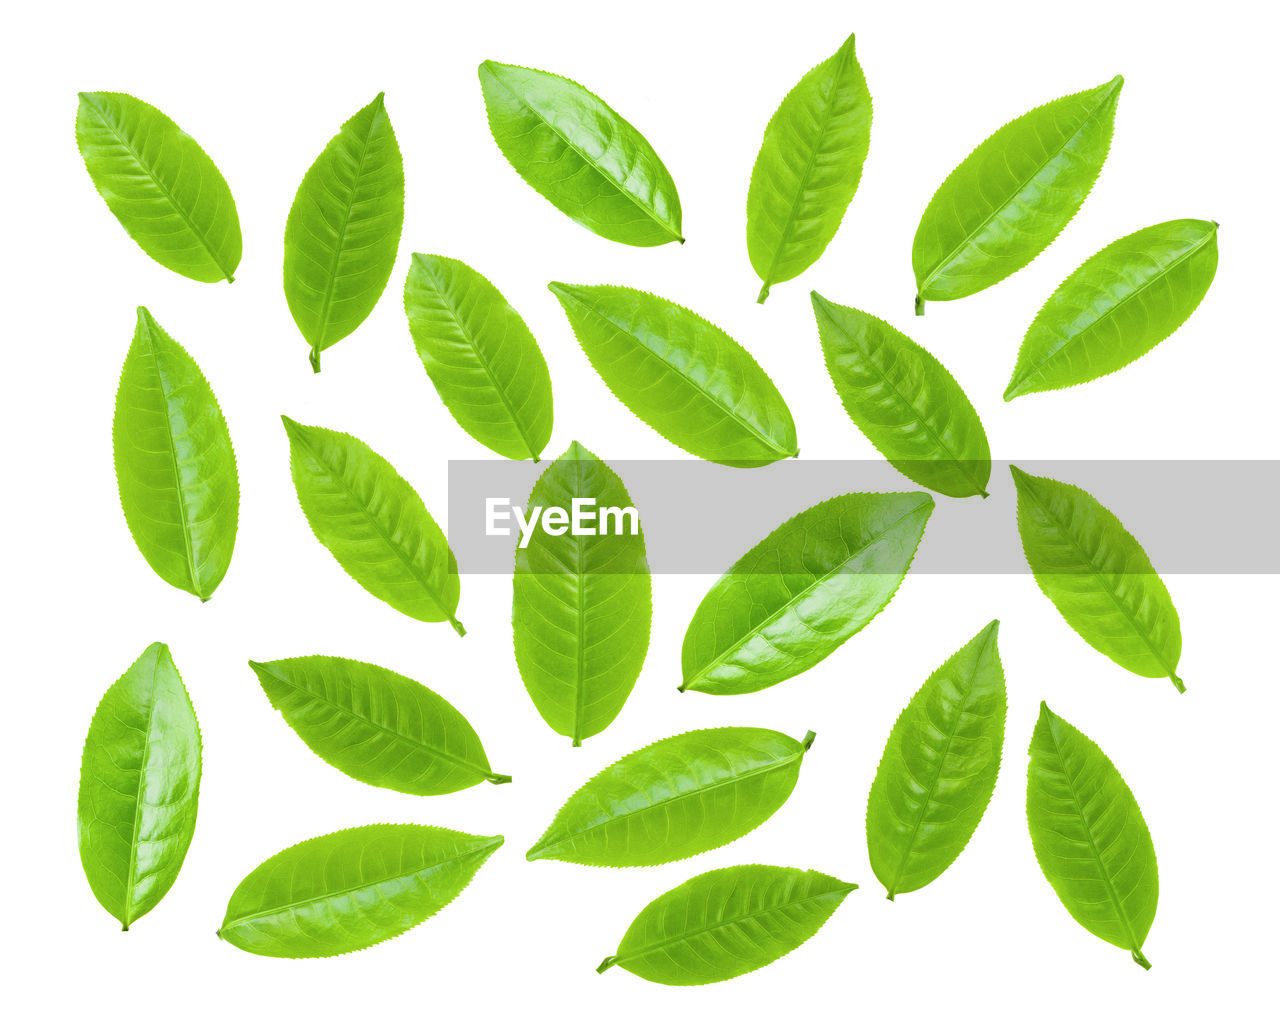 leaf, plant part, white background, green color, studio shot, no people, indoors, leaves, nature, directly above, food and drink, close-up, plant, food, cut out, mint leaf - culinary, pattern, herb, creativity, freshness, digital composite